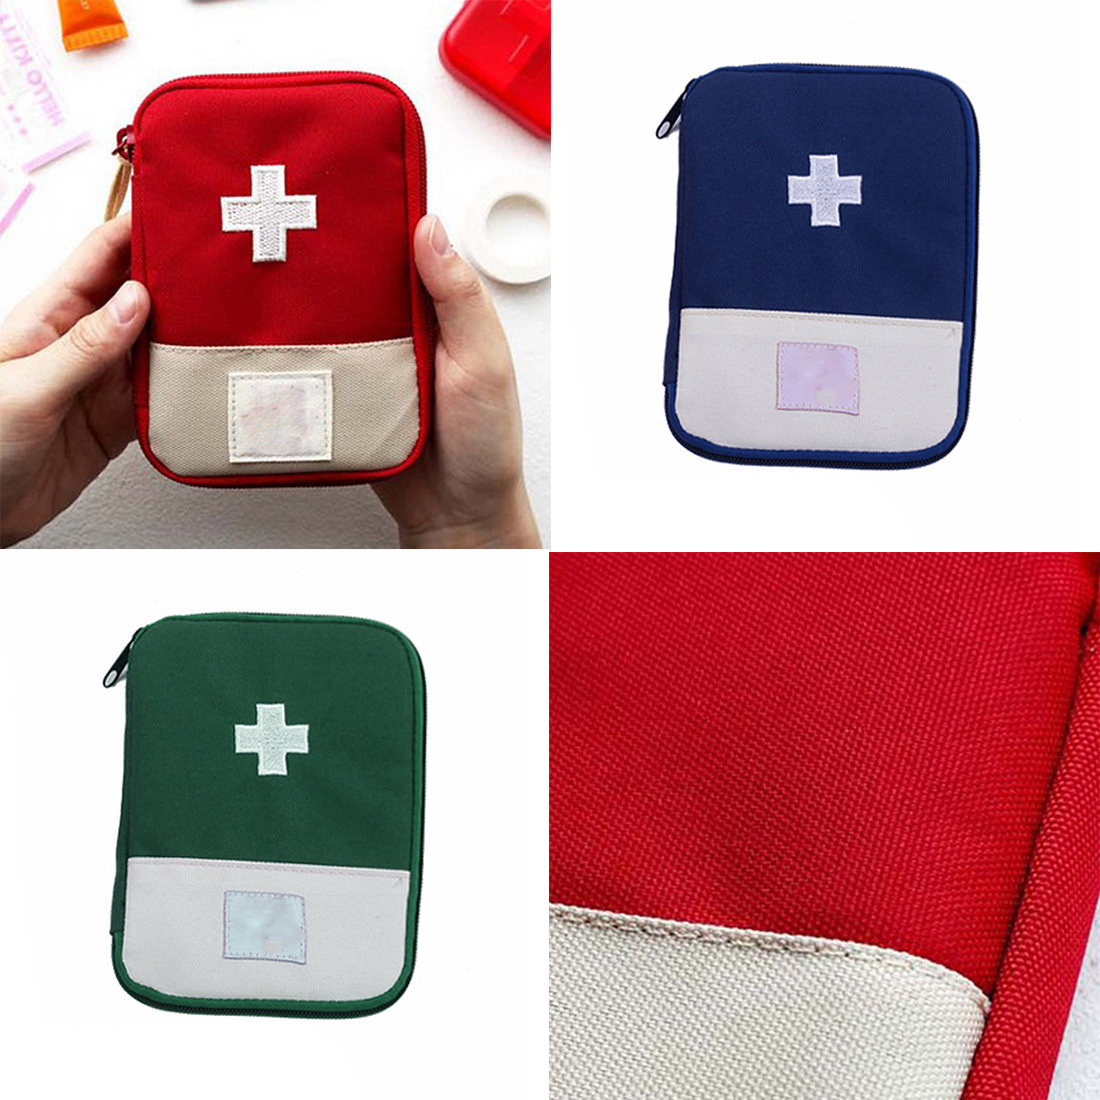 Practical Outdoor Home Survival Portable edc camping equipment First Aid Kit font b bag b font